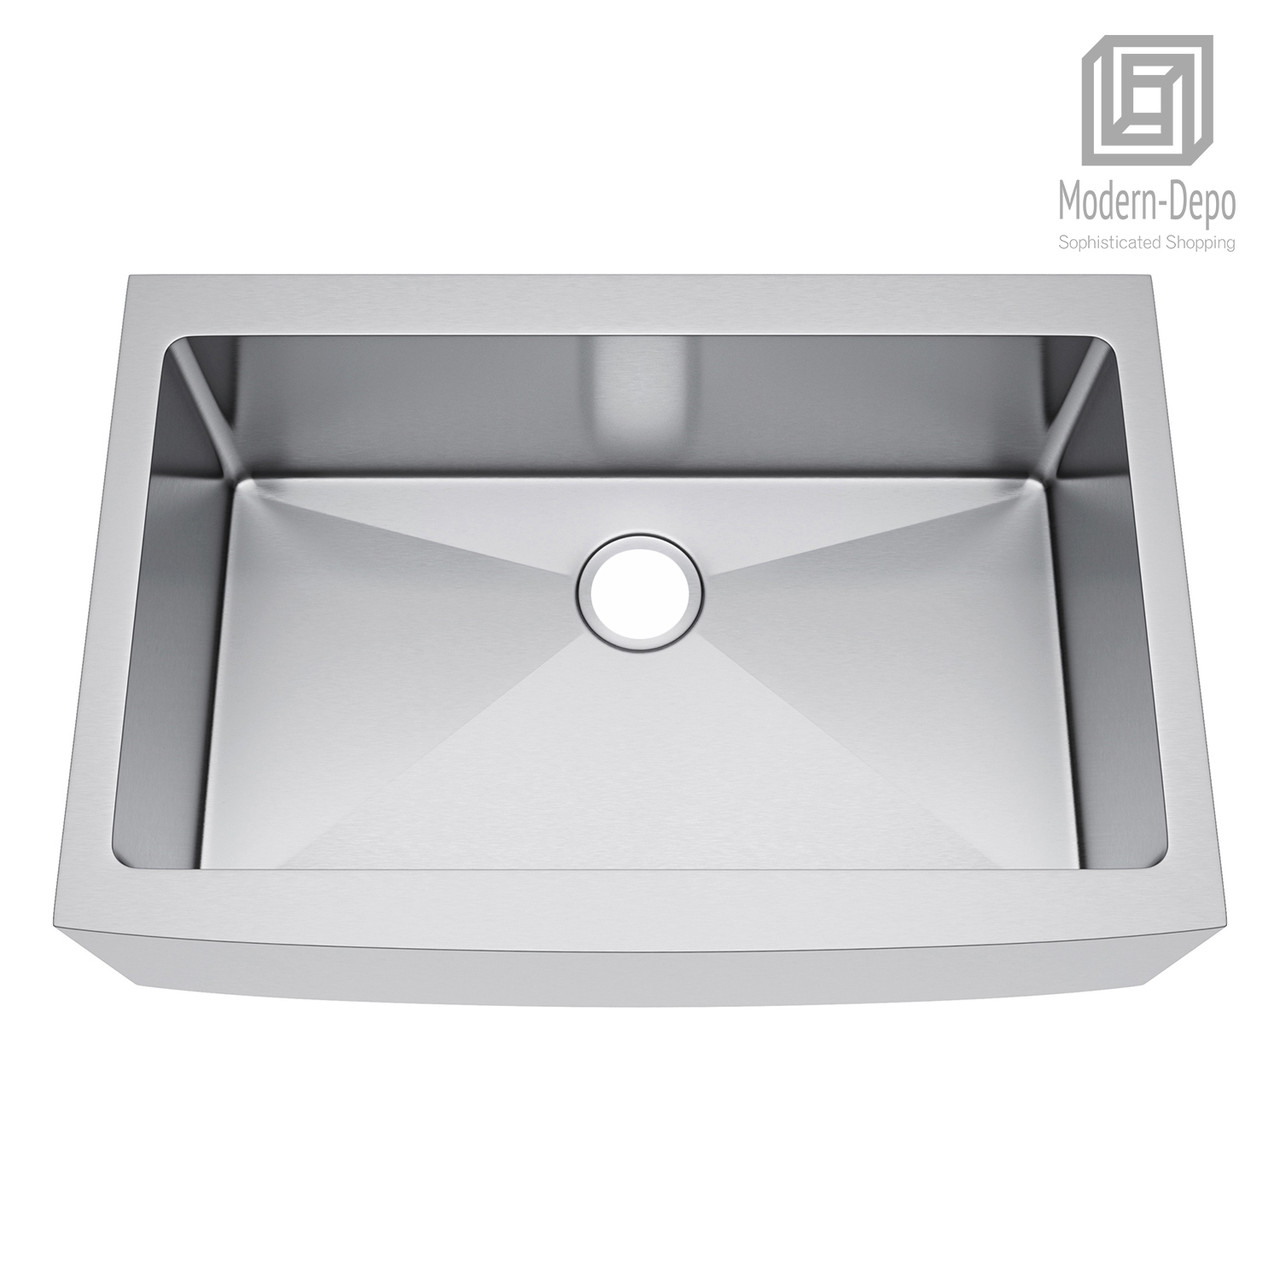 Exclusive Heritage 33 X 22 Single Bowl Stainless Steel Kitchen Farmhouse Apron Front Sink Ksh 3322 S Fb Modern Depo